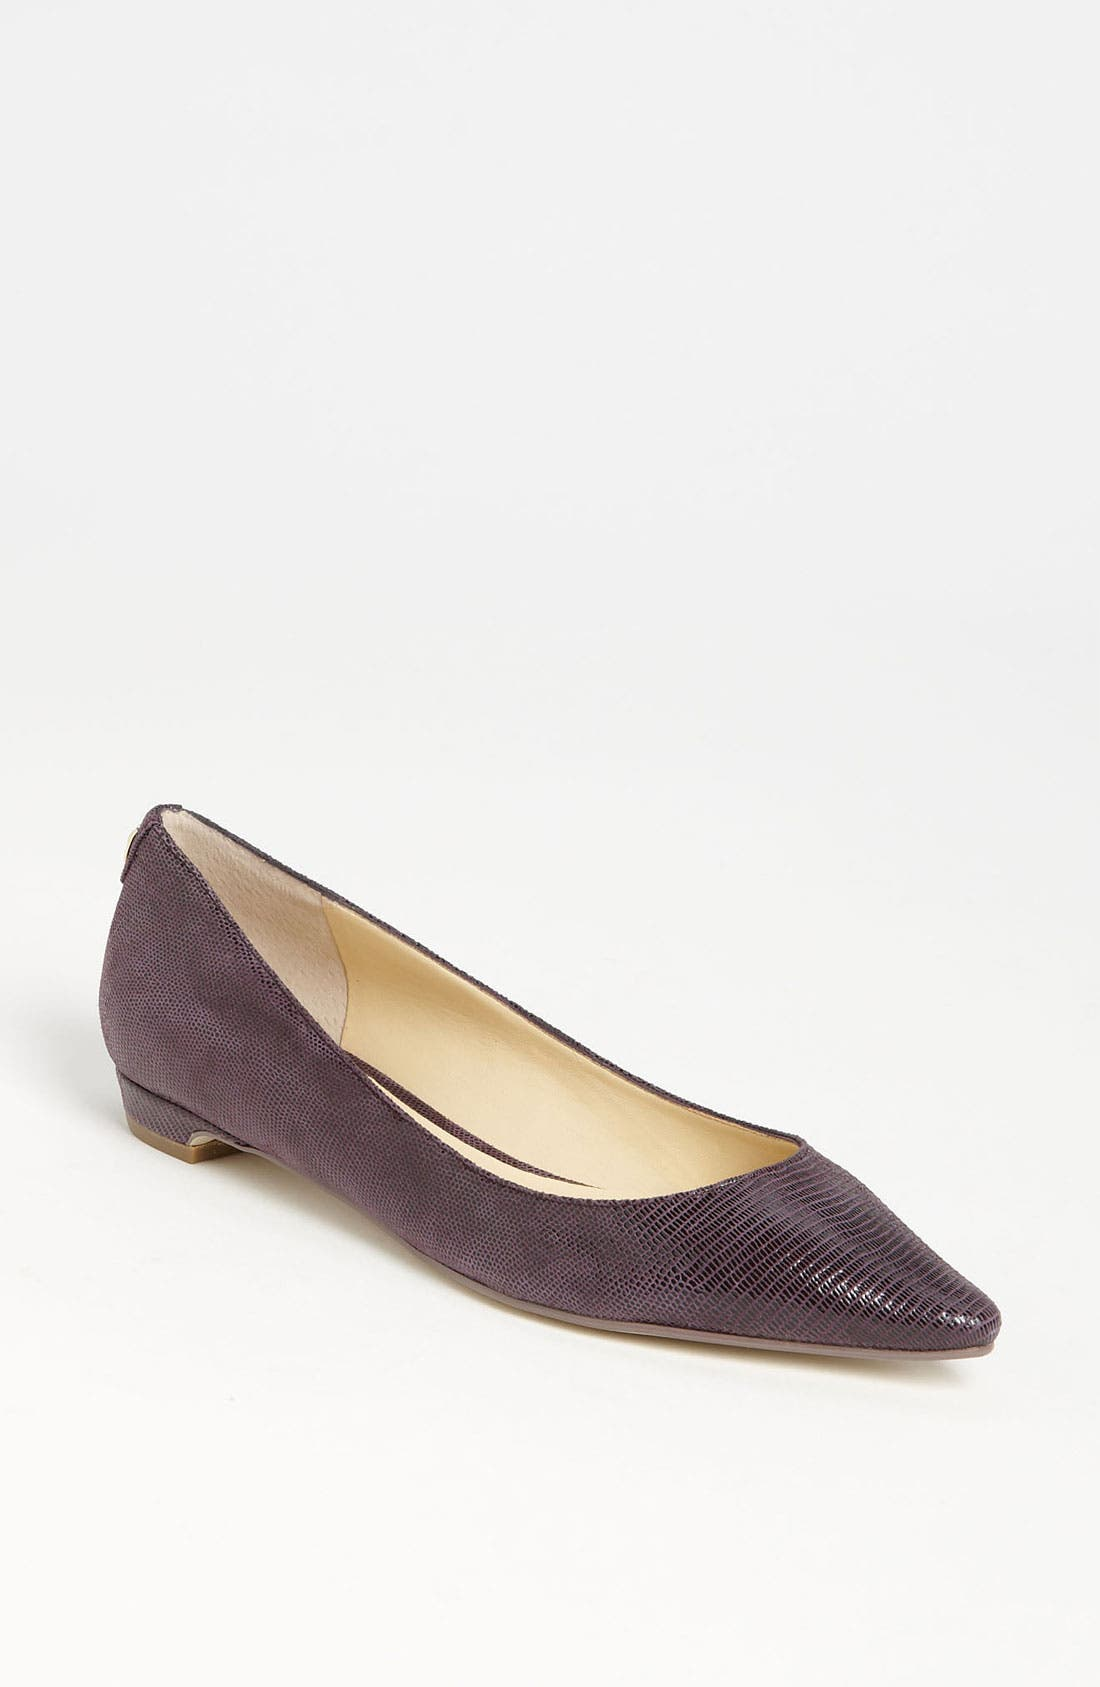 Alternate Image 1 Selected - Ivanka Trump 'Annulio' Flat